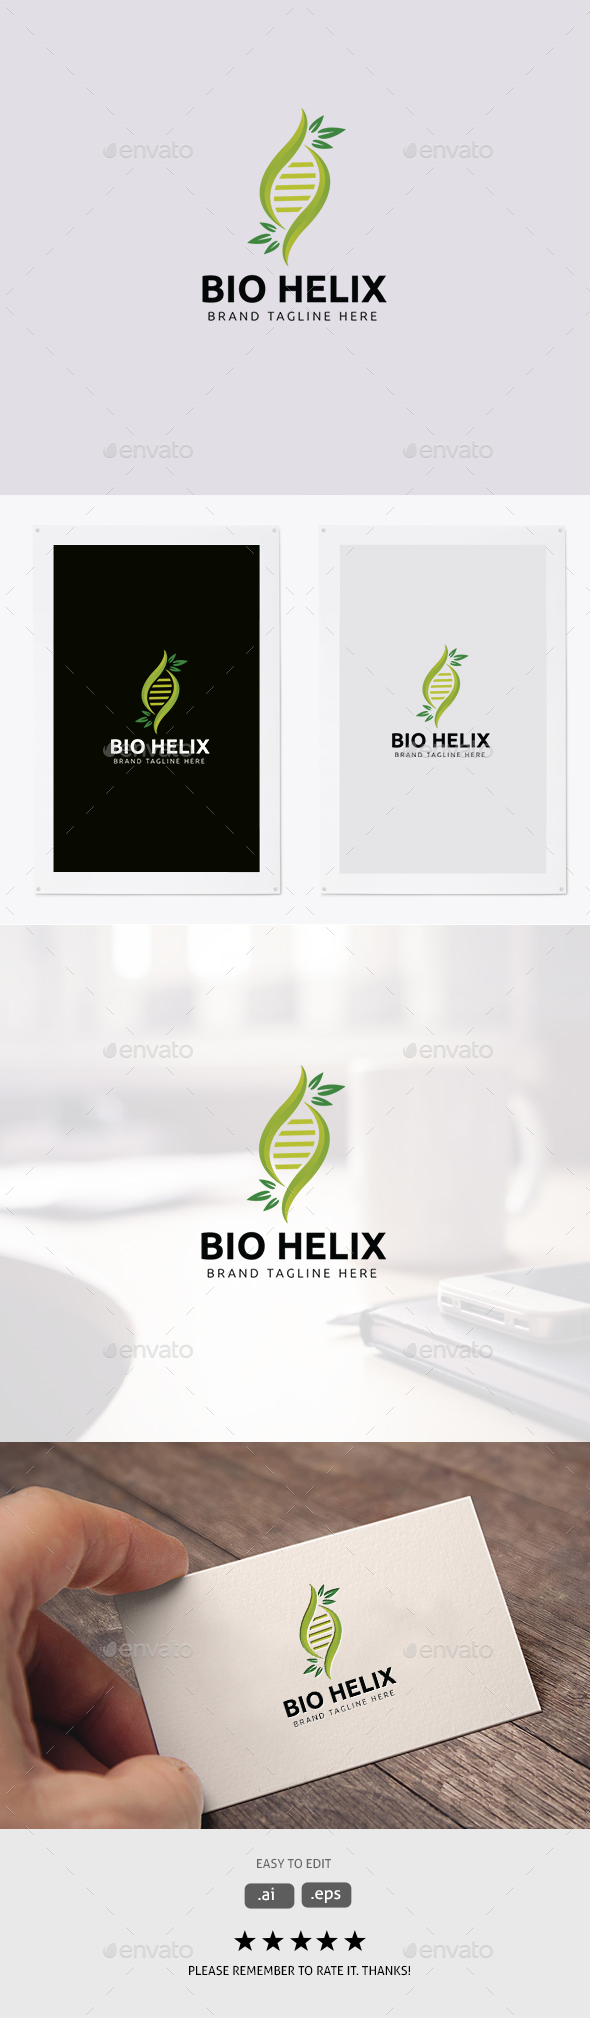 Bio Helix/DNA Logo - Abstract Logo Templates